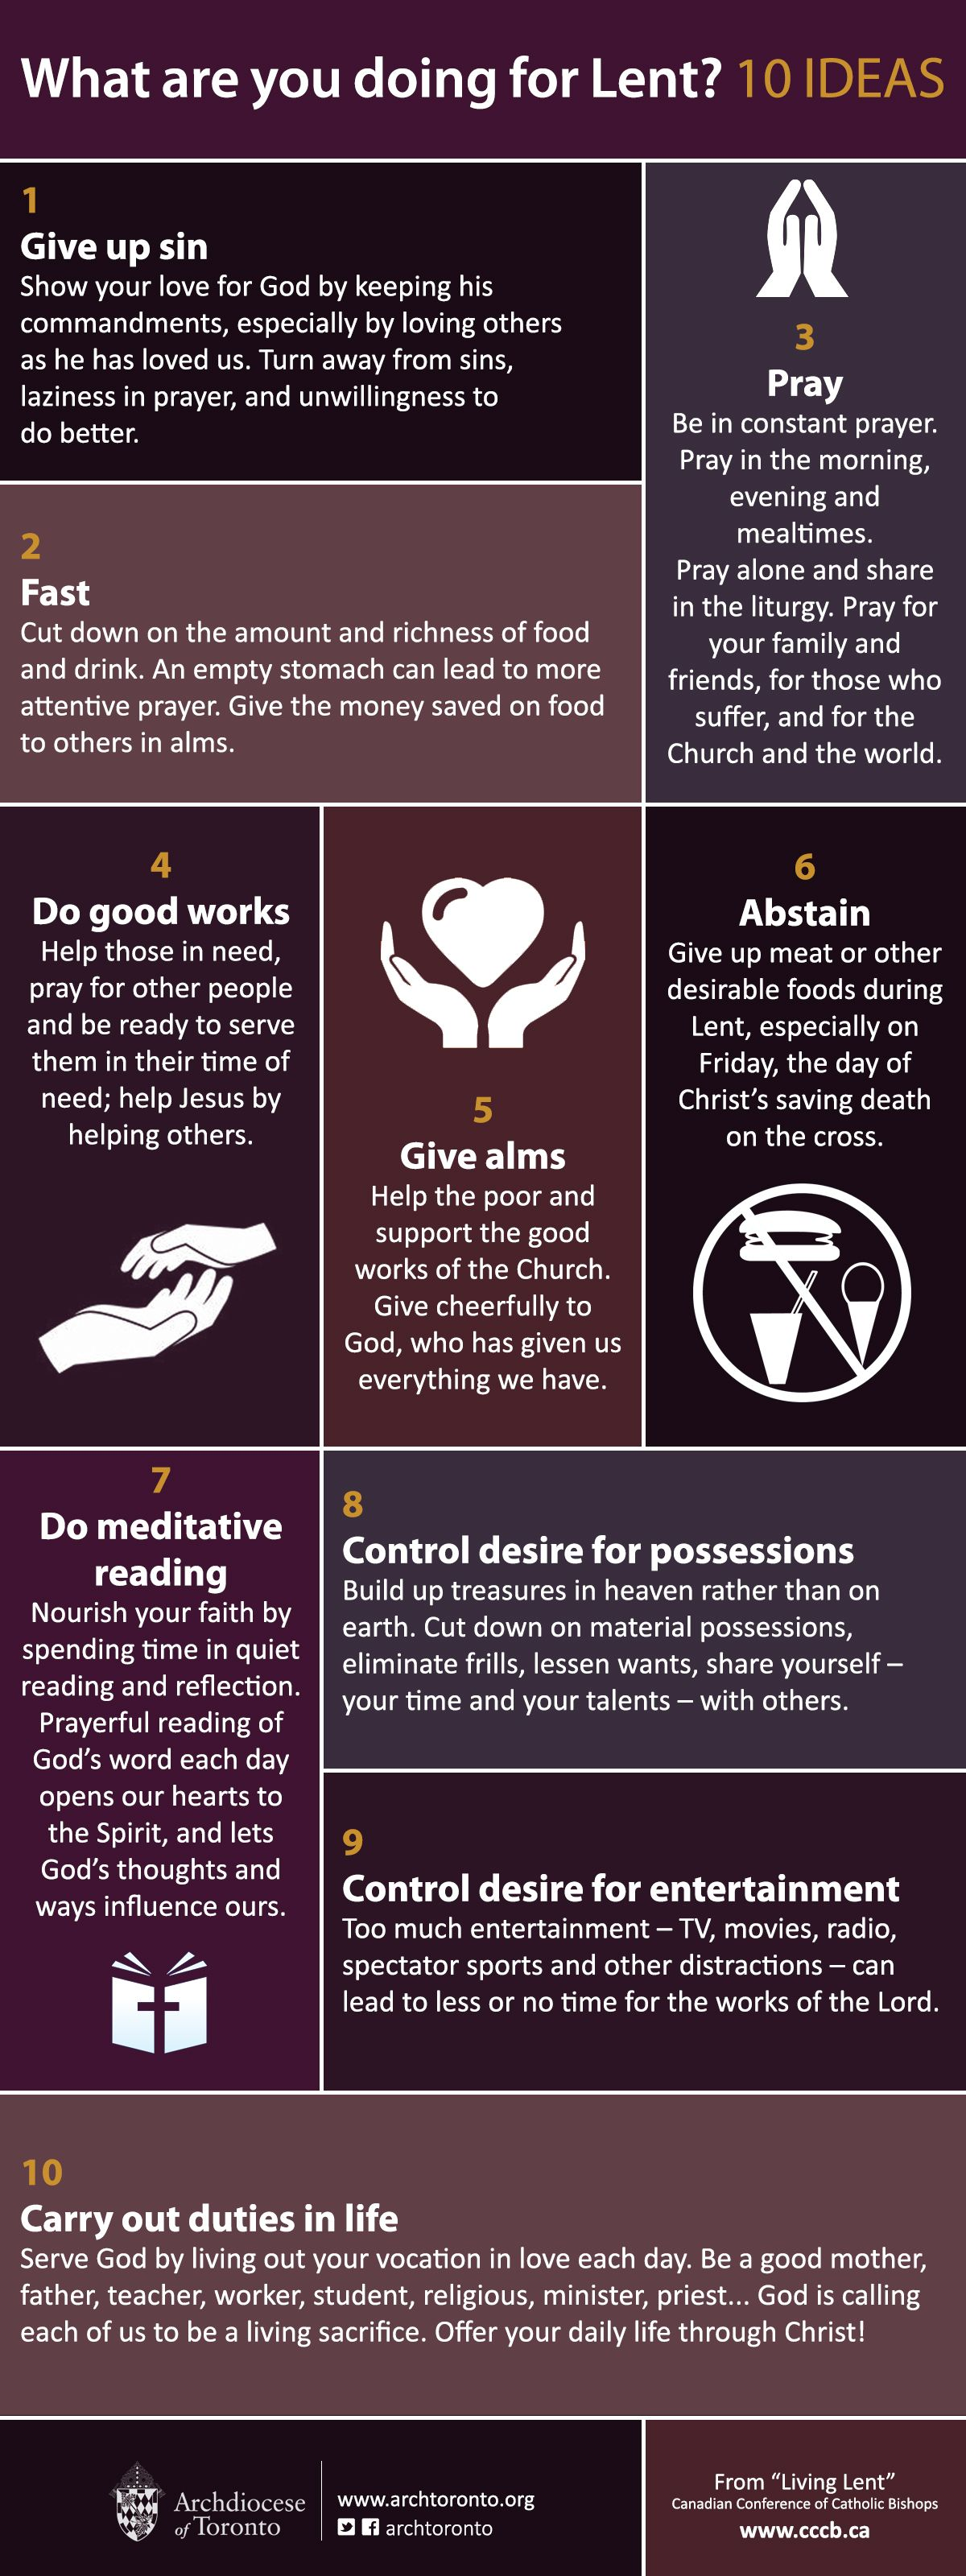 What are you doing for Lent 10